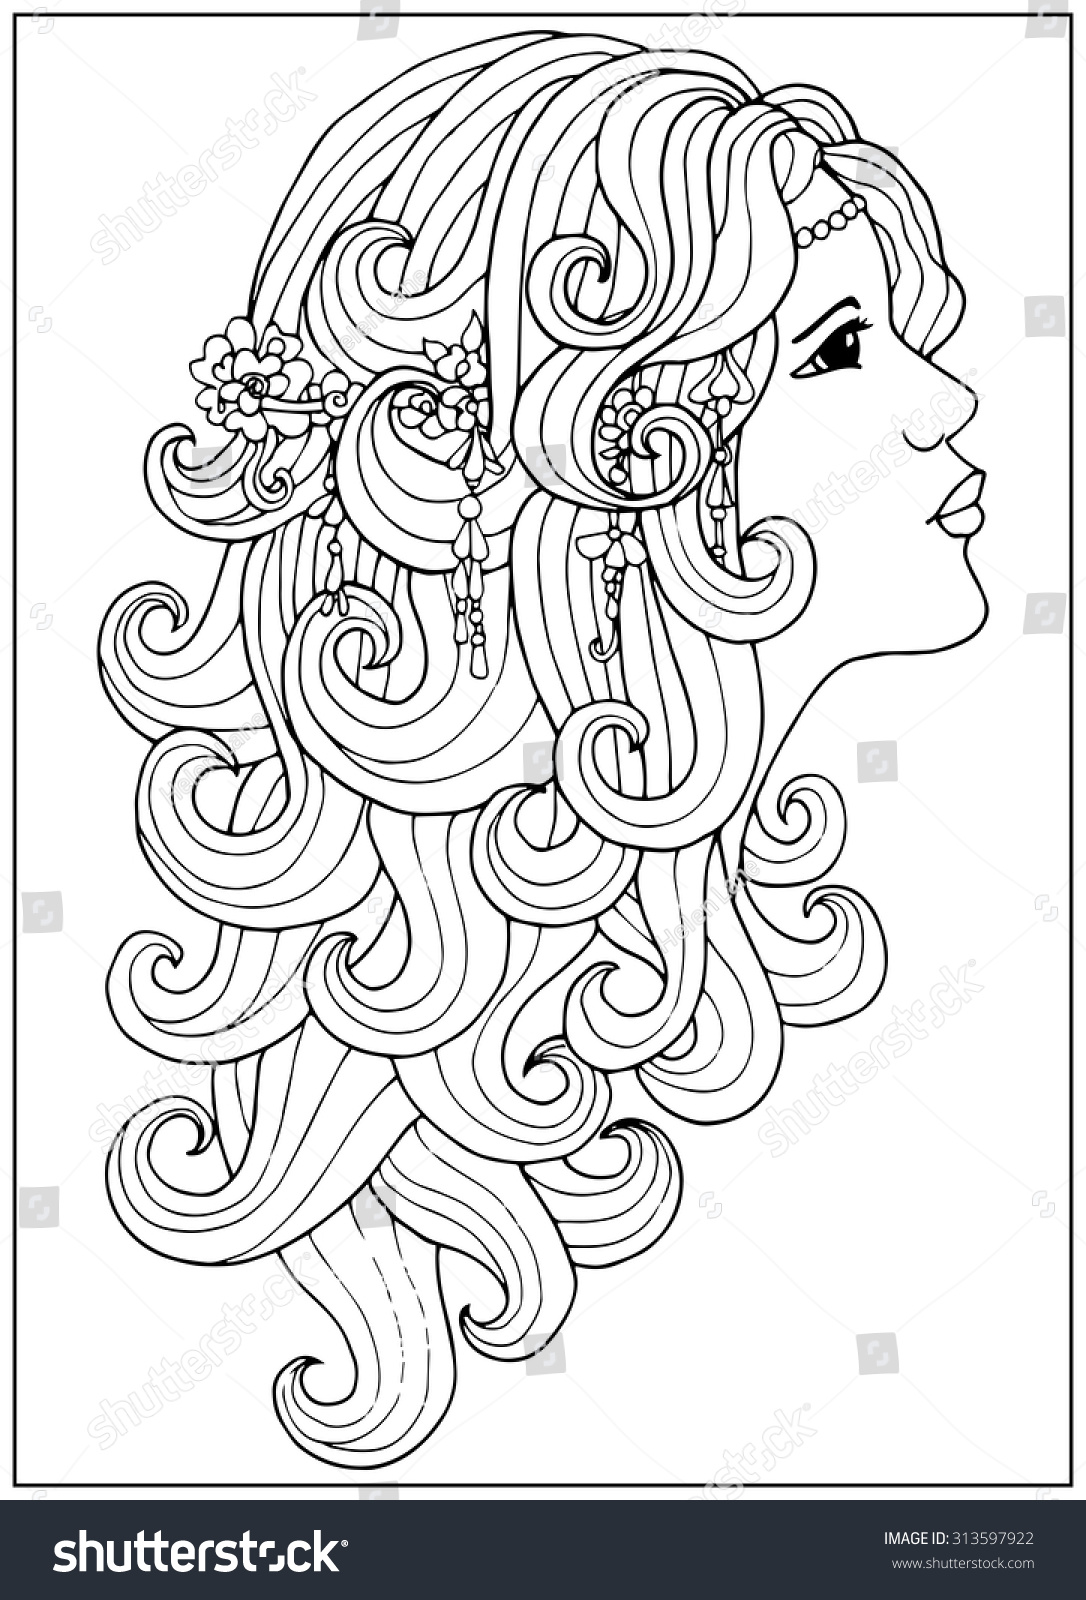 Coloring Page With Girl With Long Curly Hair Stock Vector